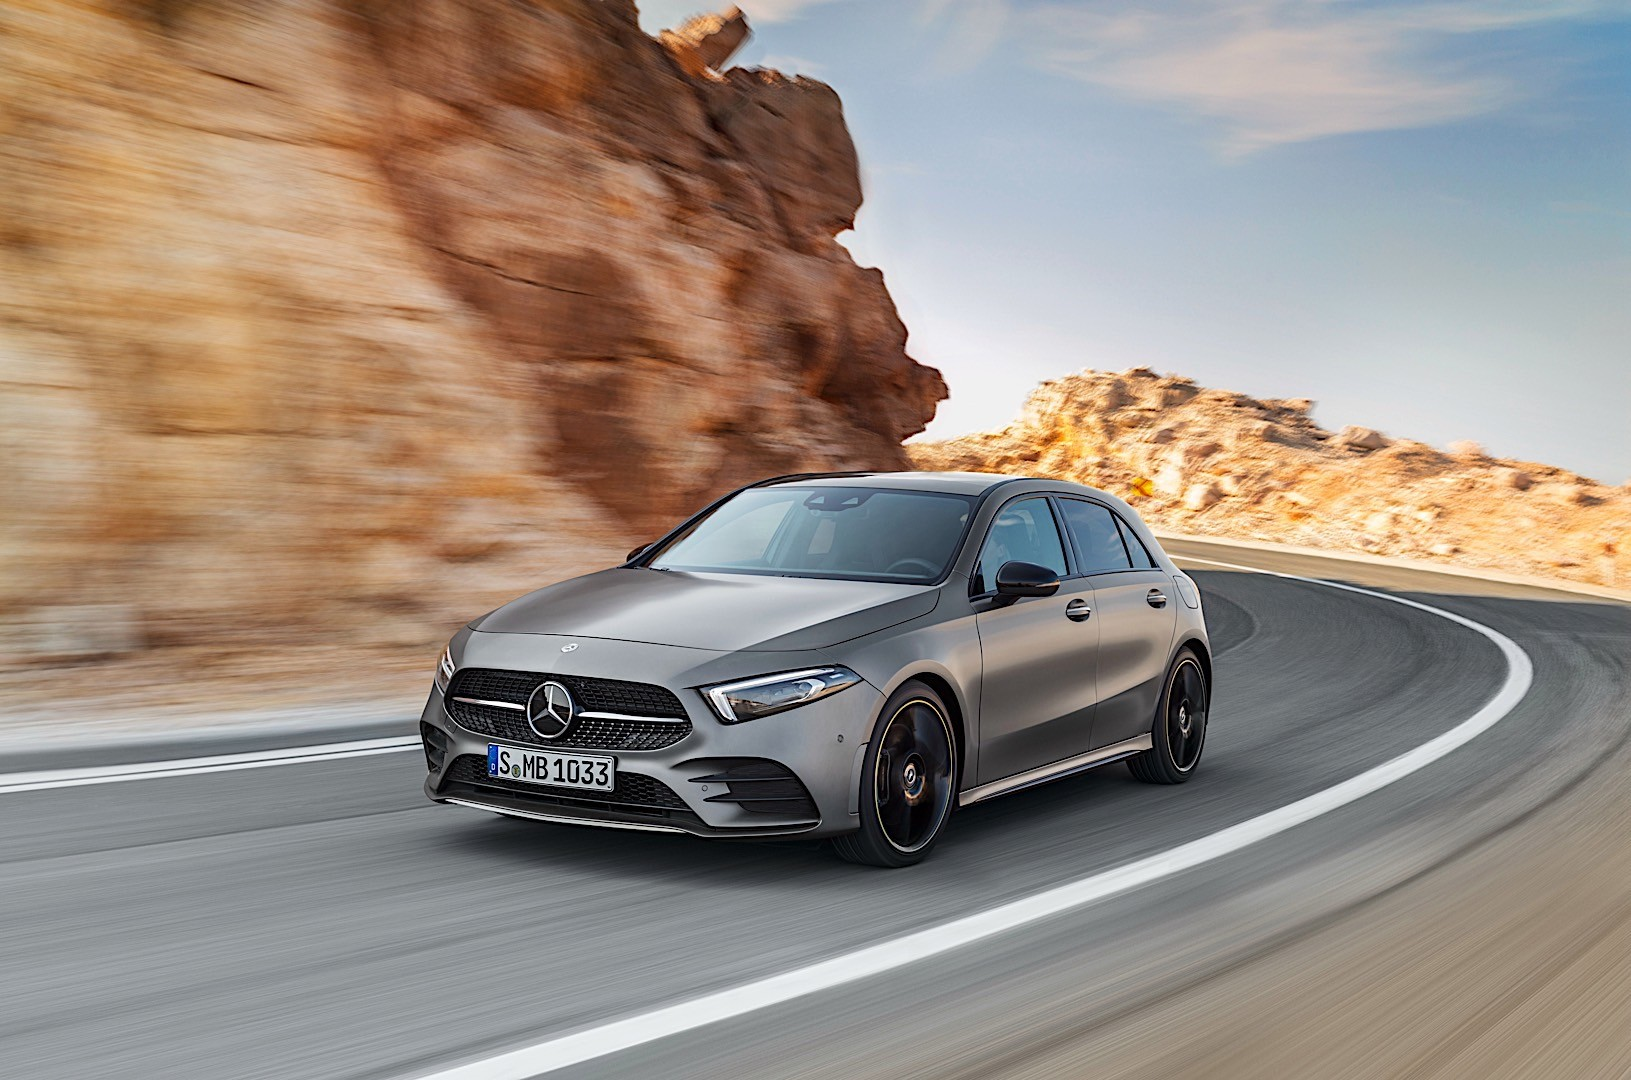 Mercedes benz a class w177 specs 2018 autoevolution for Mercedes benz training and education